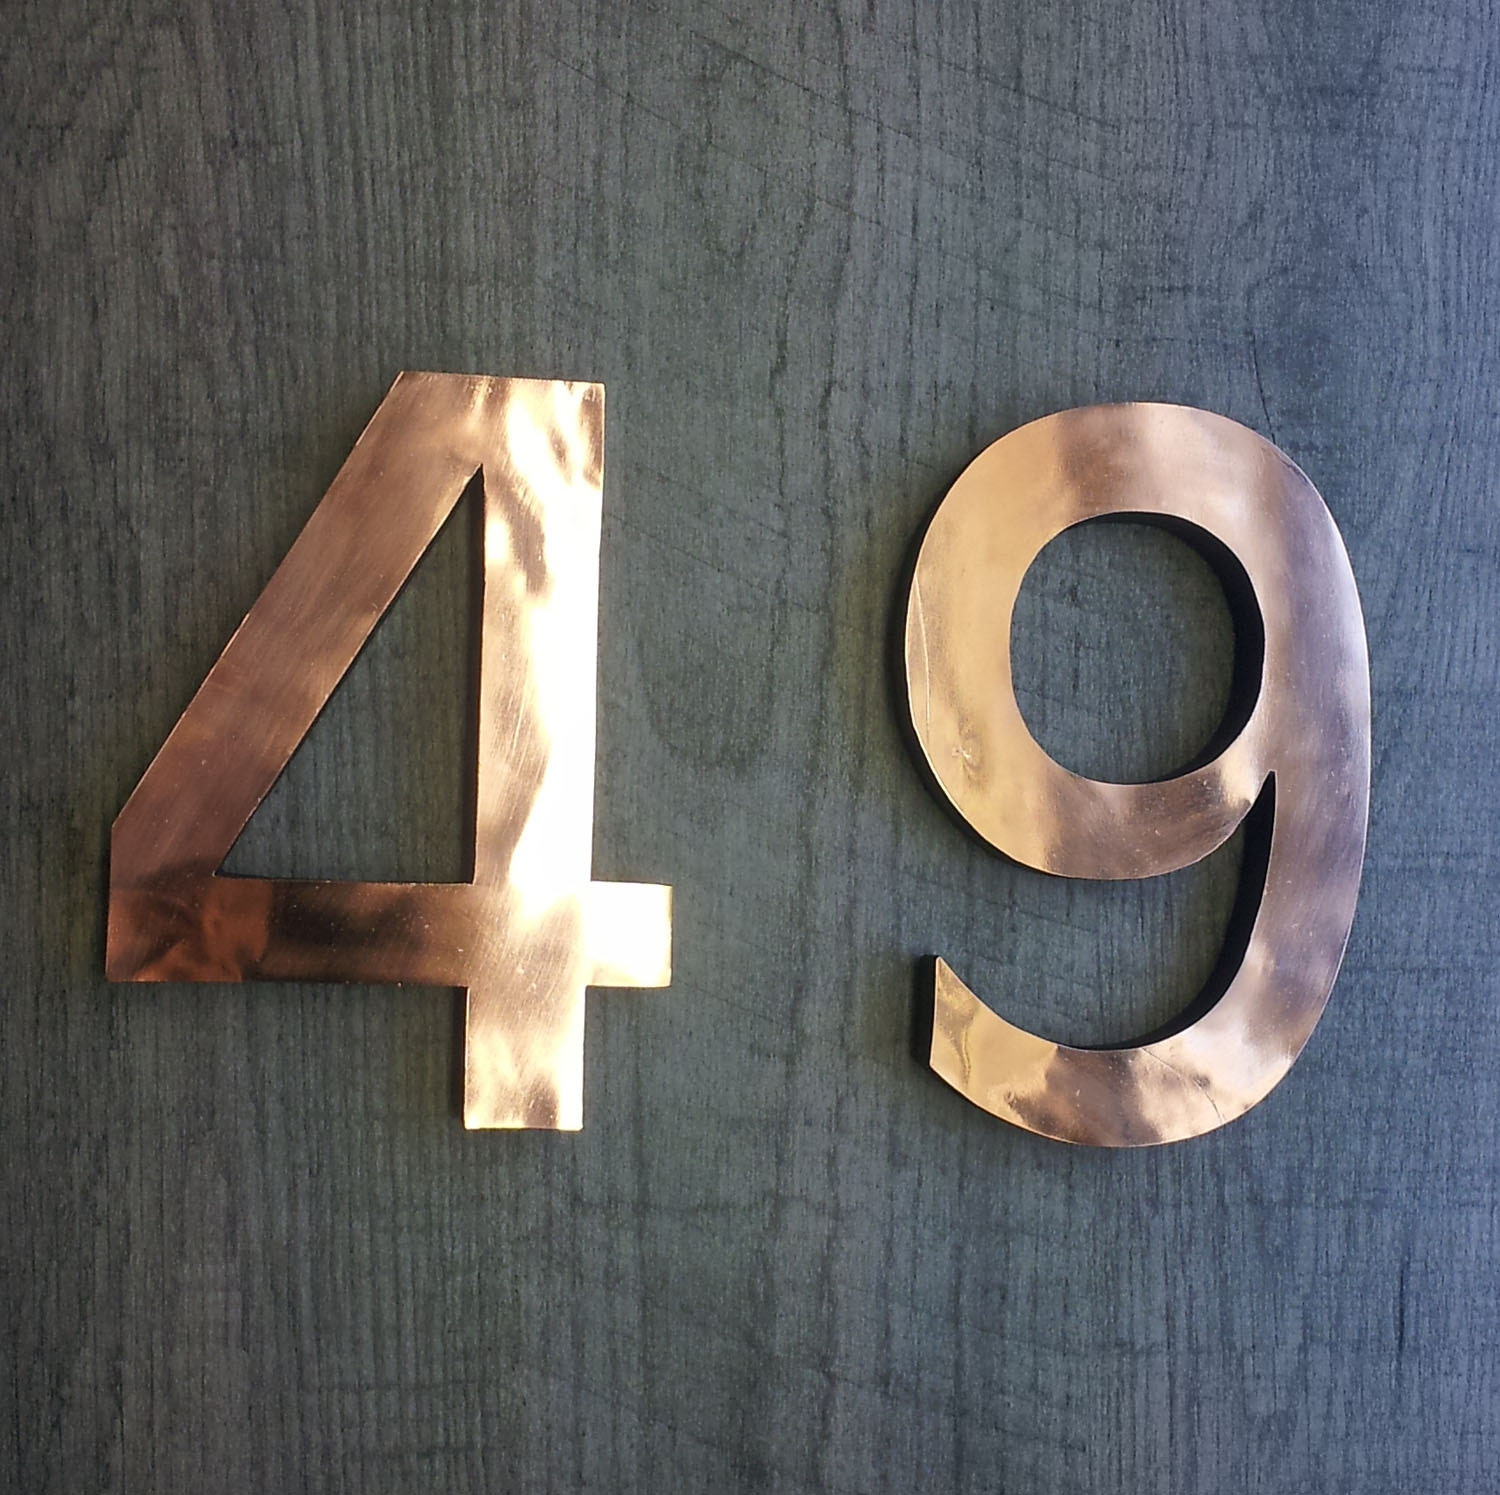 Large architectural copper 3d numbers 12 305mm high for Large 3d numbers